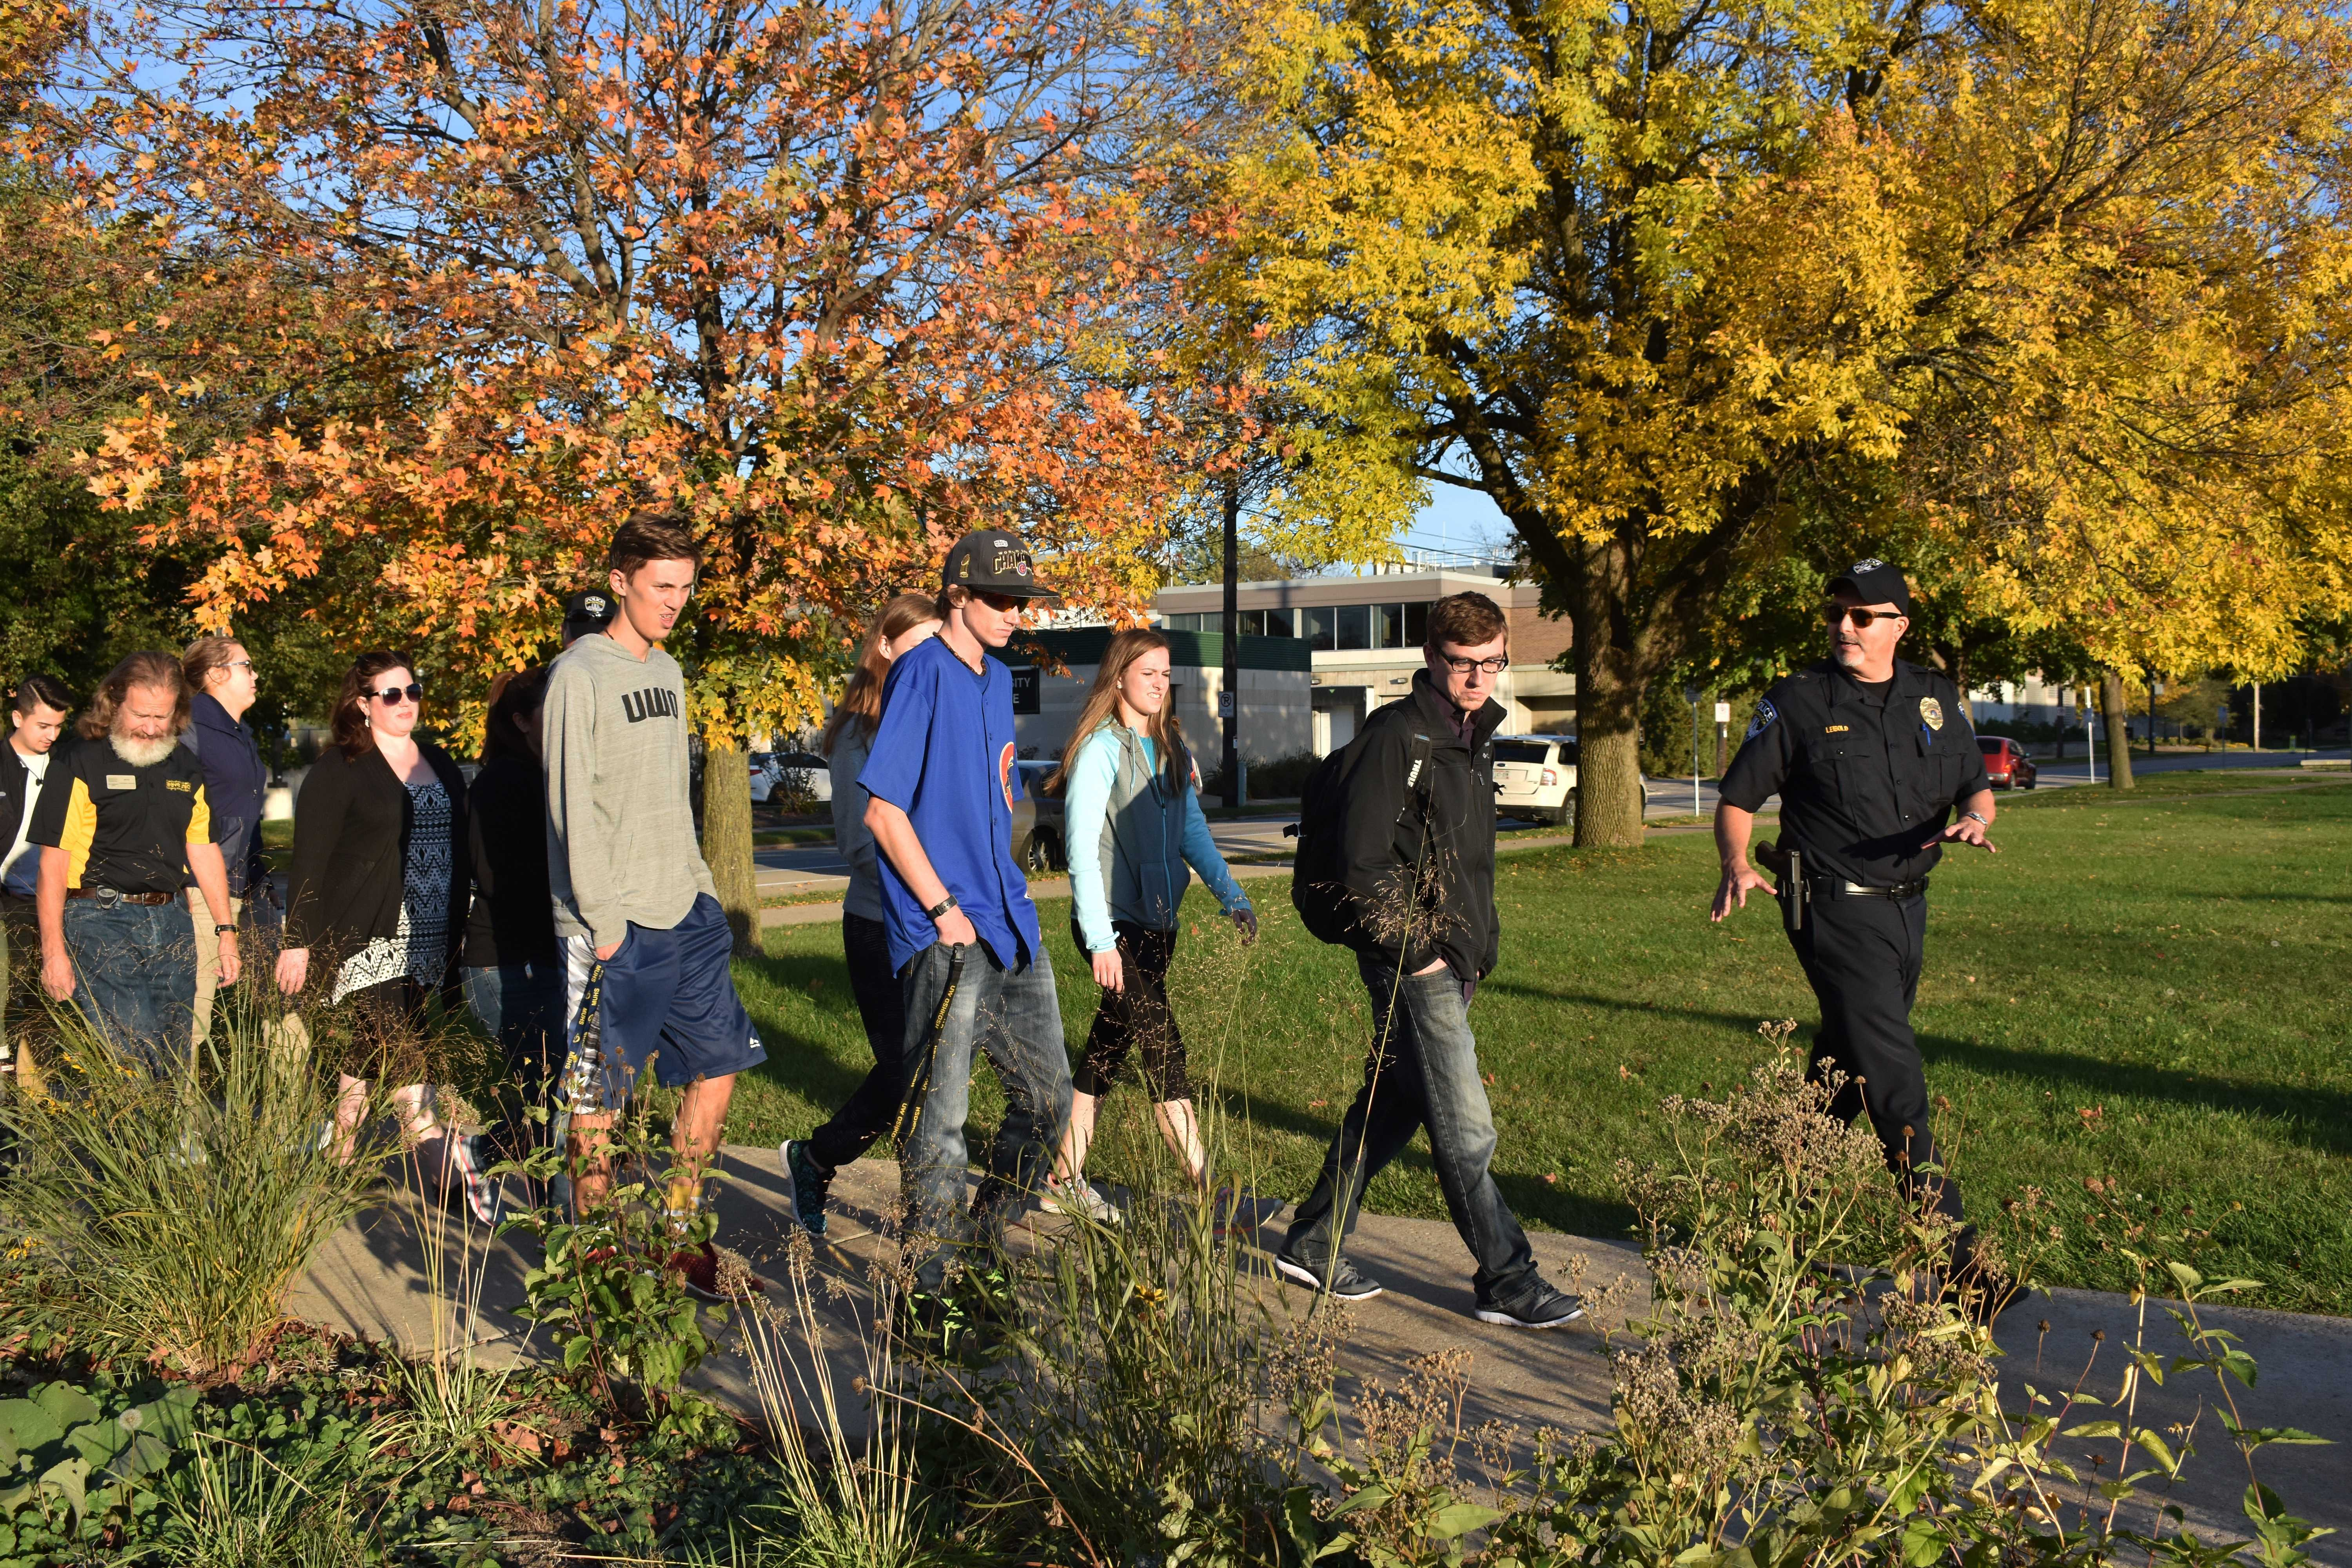 Safety Walks looks to change campus